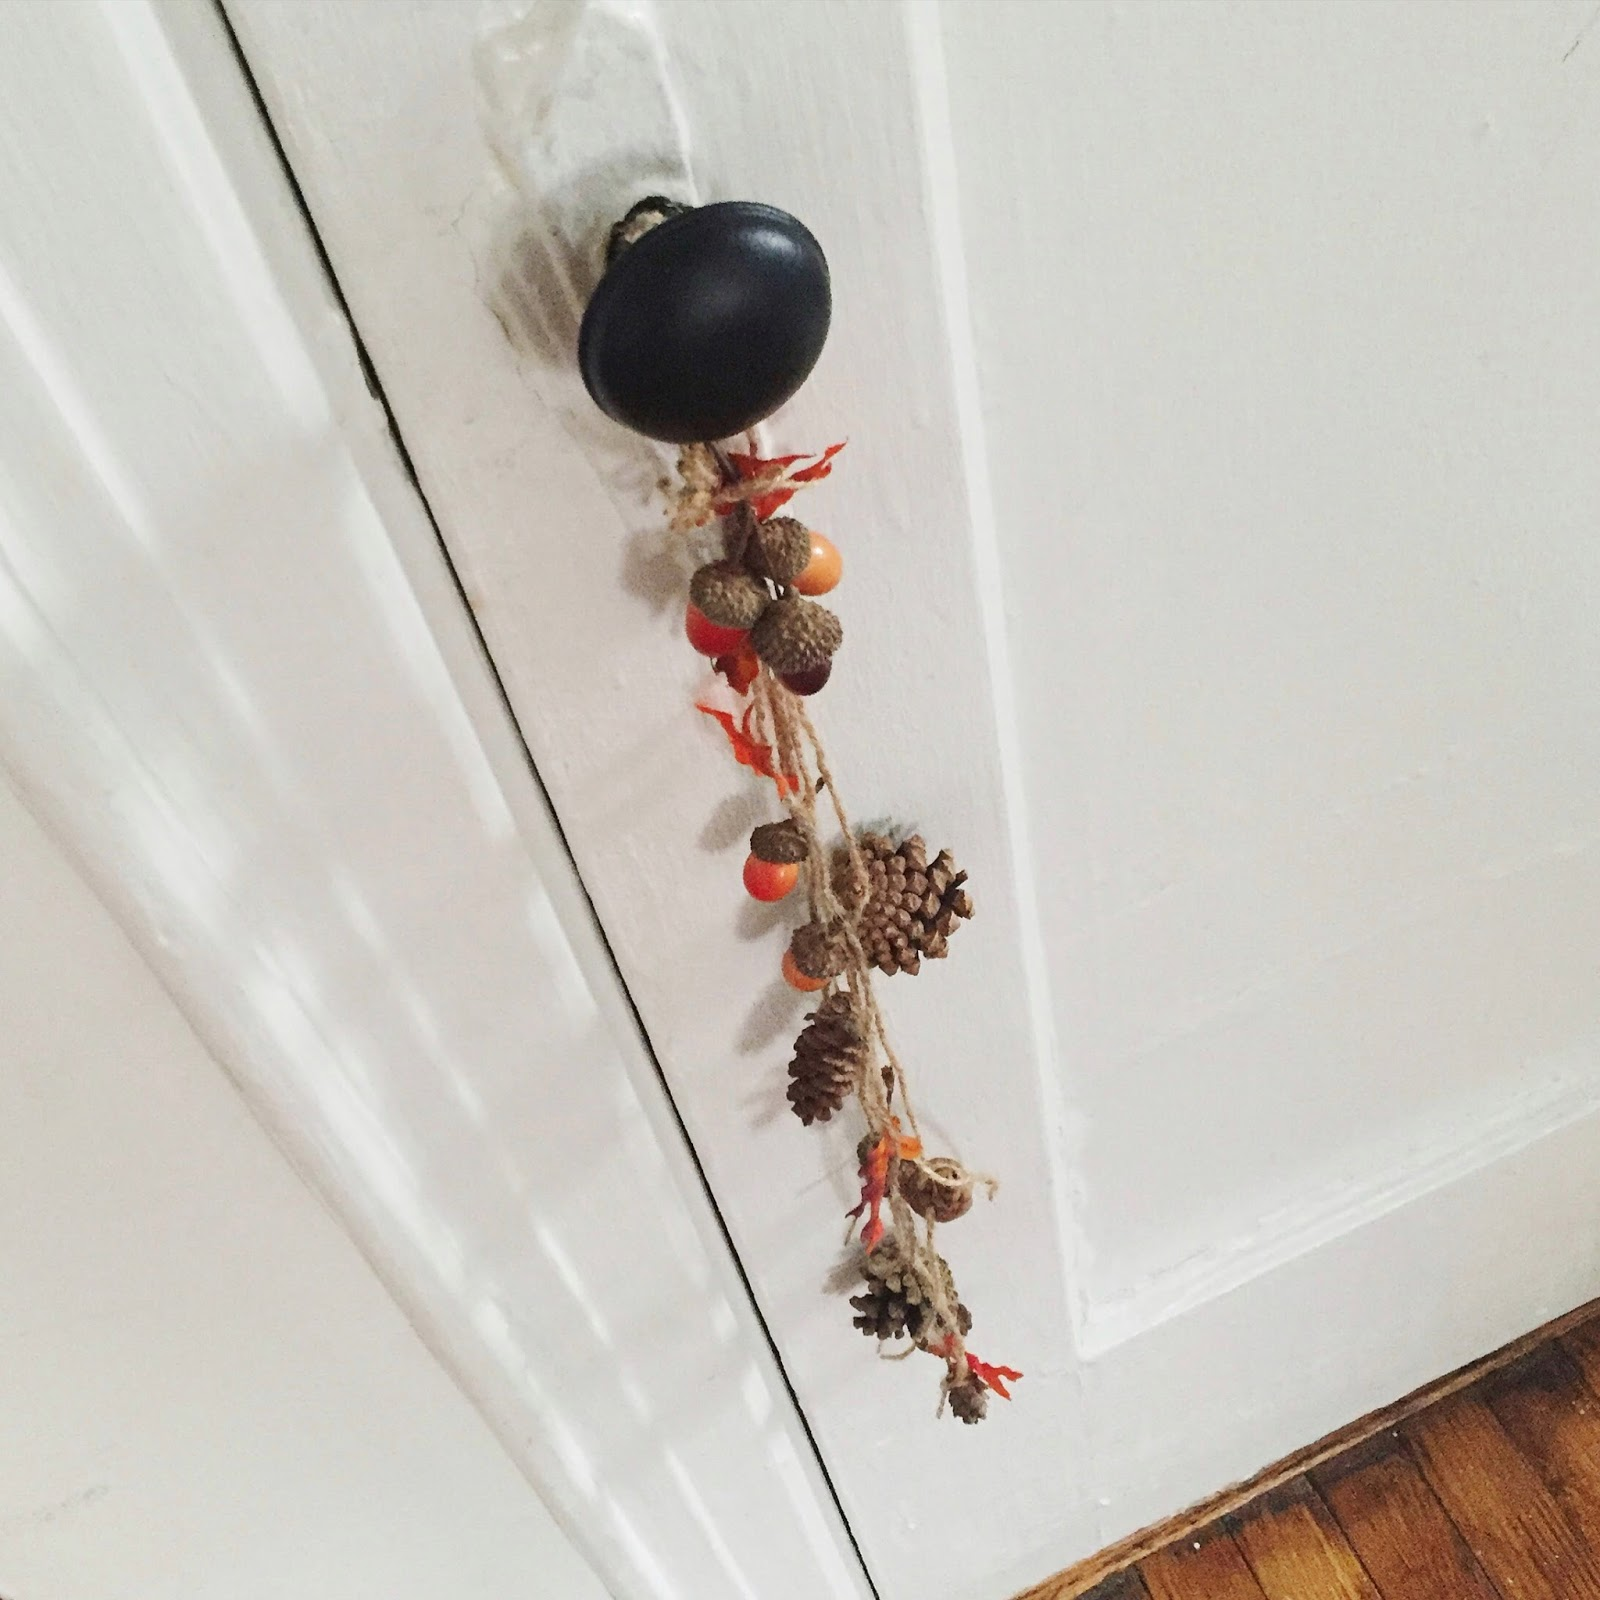 We\u0027re bringing the outside in again with all things fall! & Crafty Lumberjacks: Festive little door knob charm!